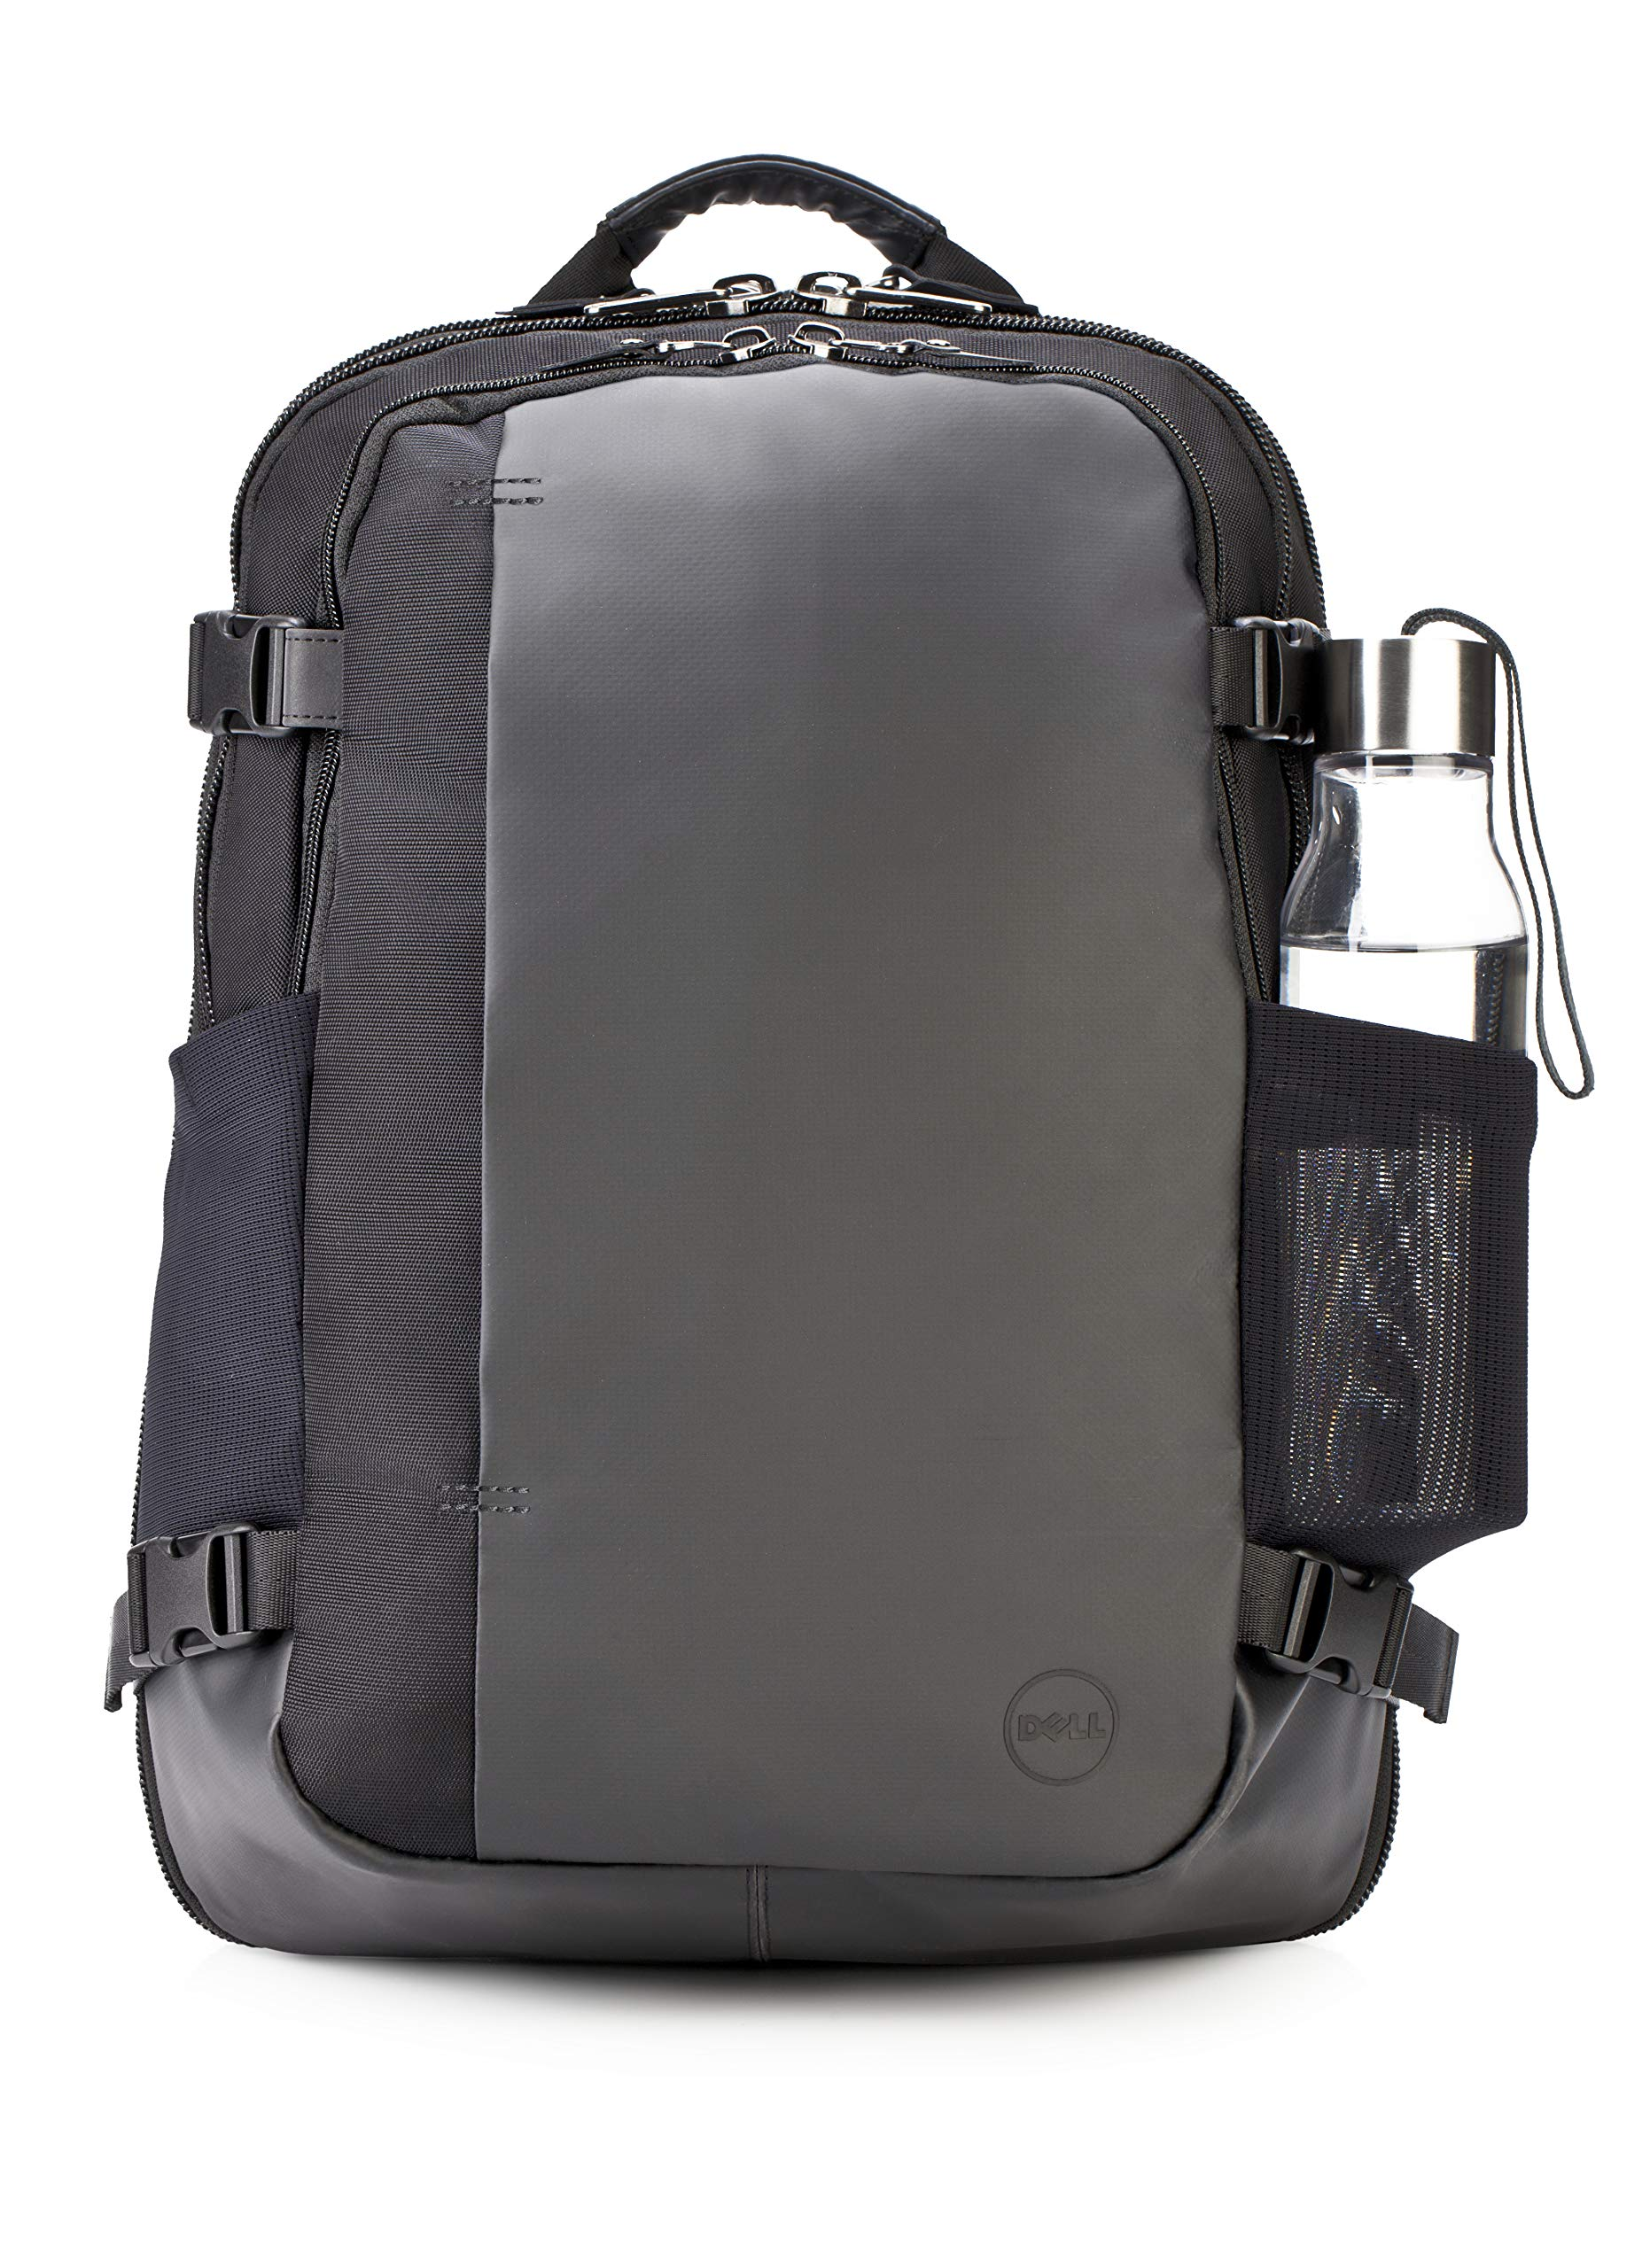 Dell Premier Backpack (1PD0H) by Dell (Image #3)